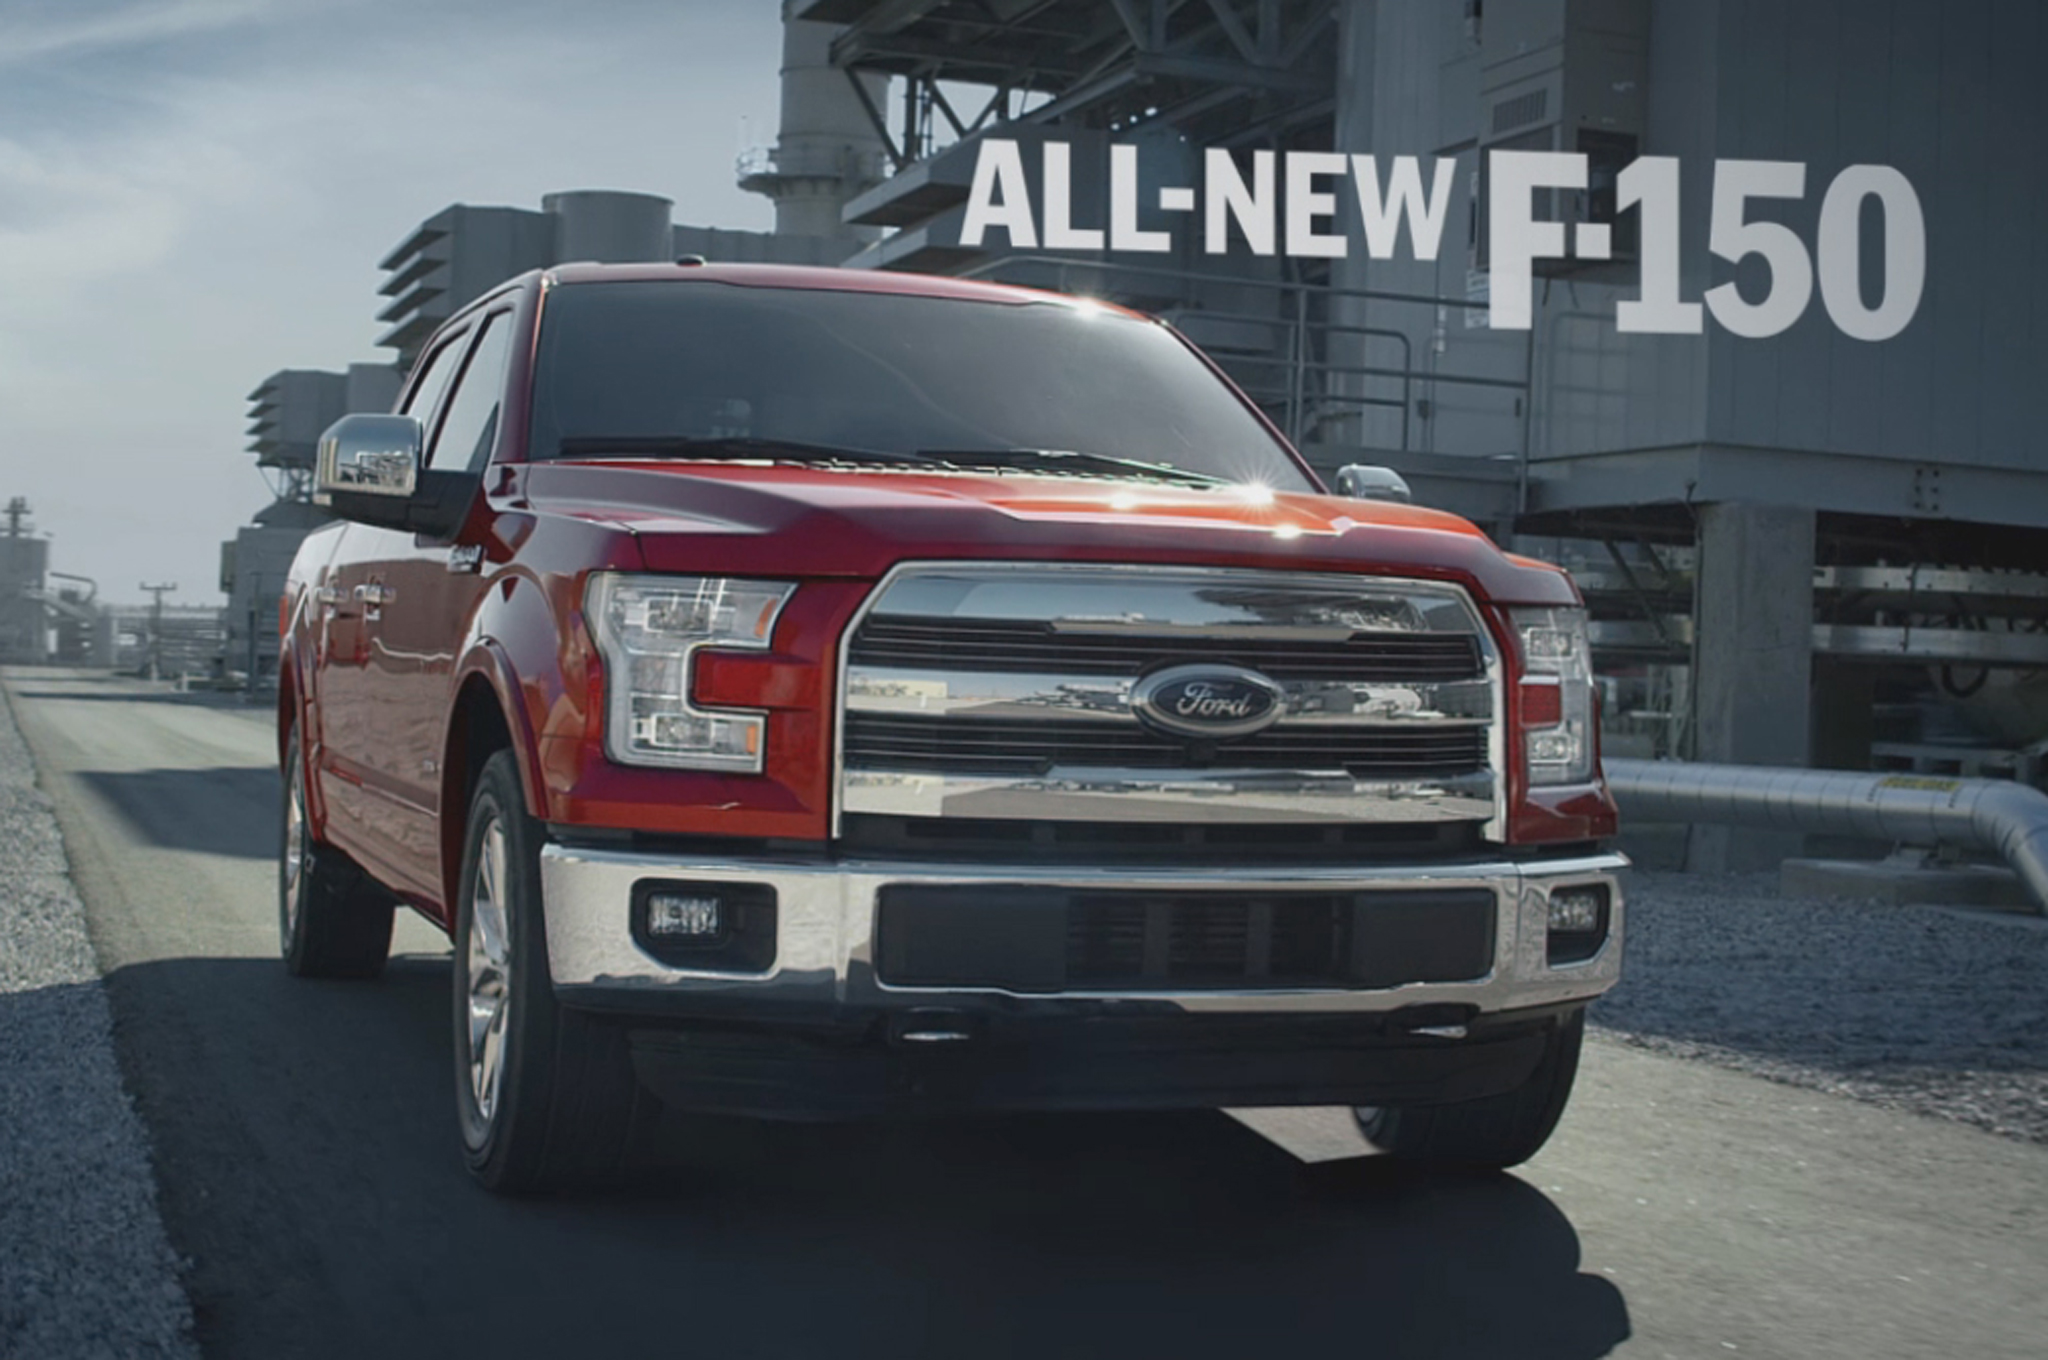 New 2015 Ford F 150 Ad Campaign Kicks f Today Motor Trend